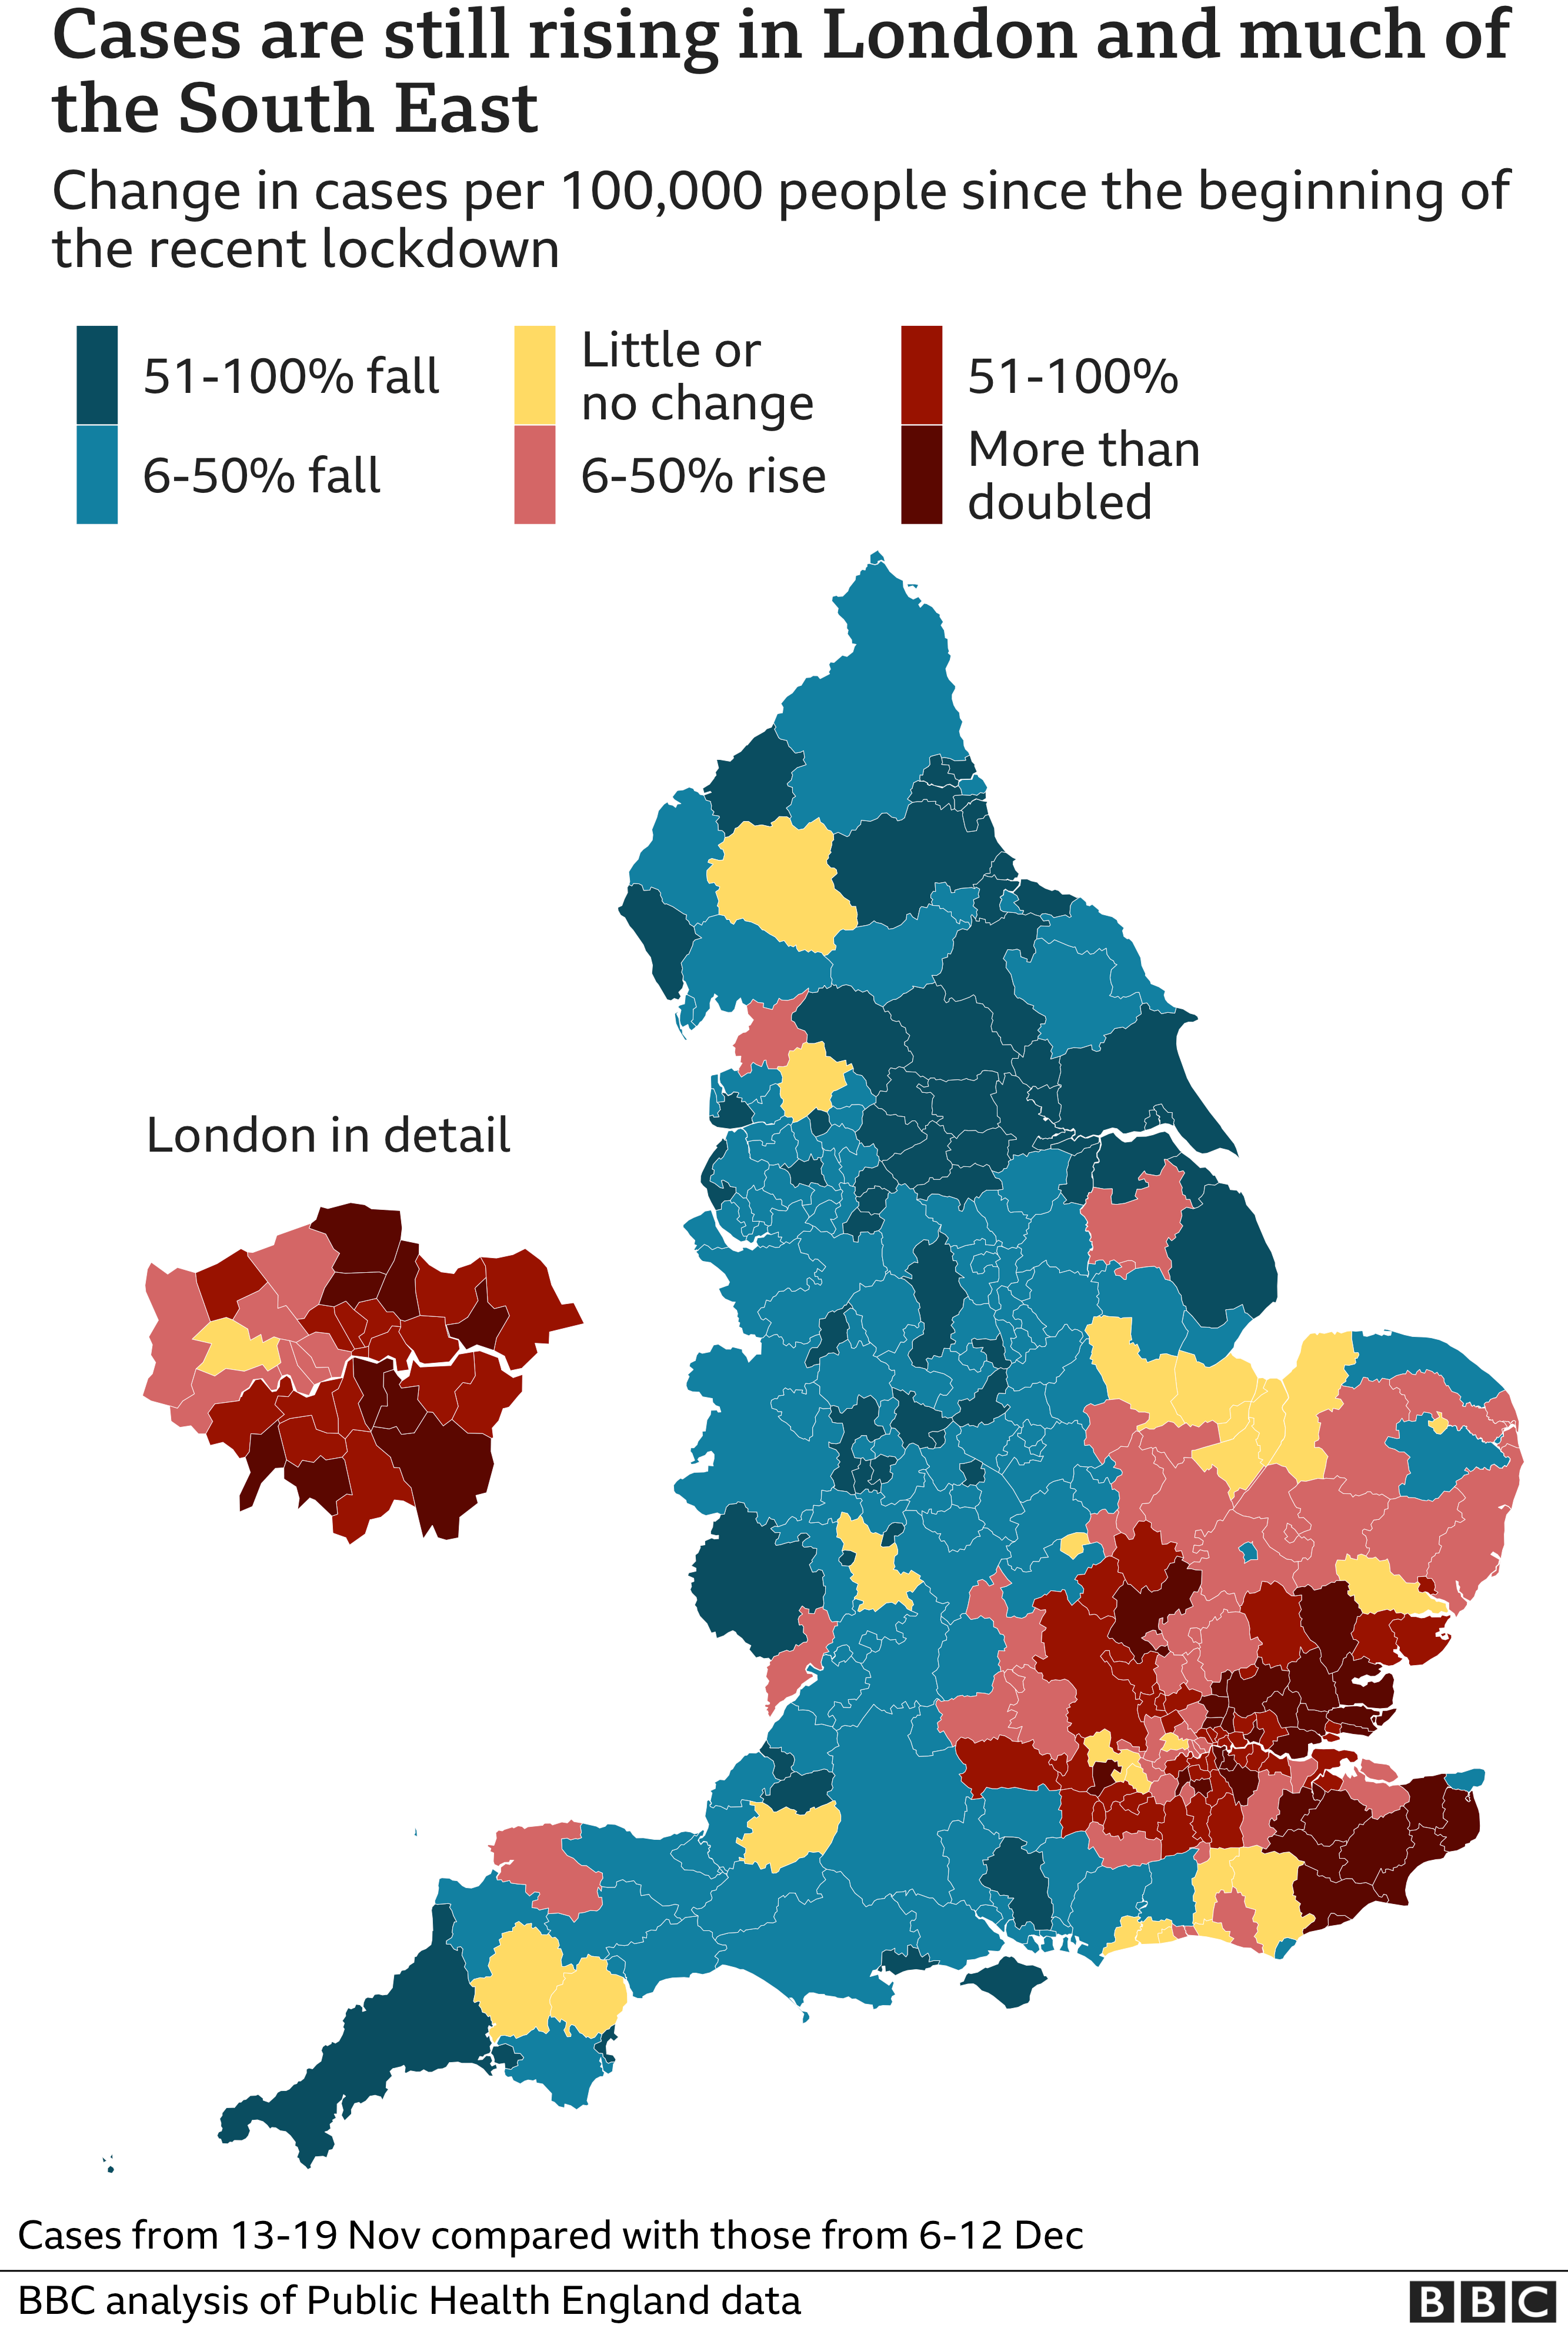 A map showing changes in case rates